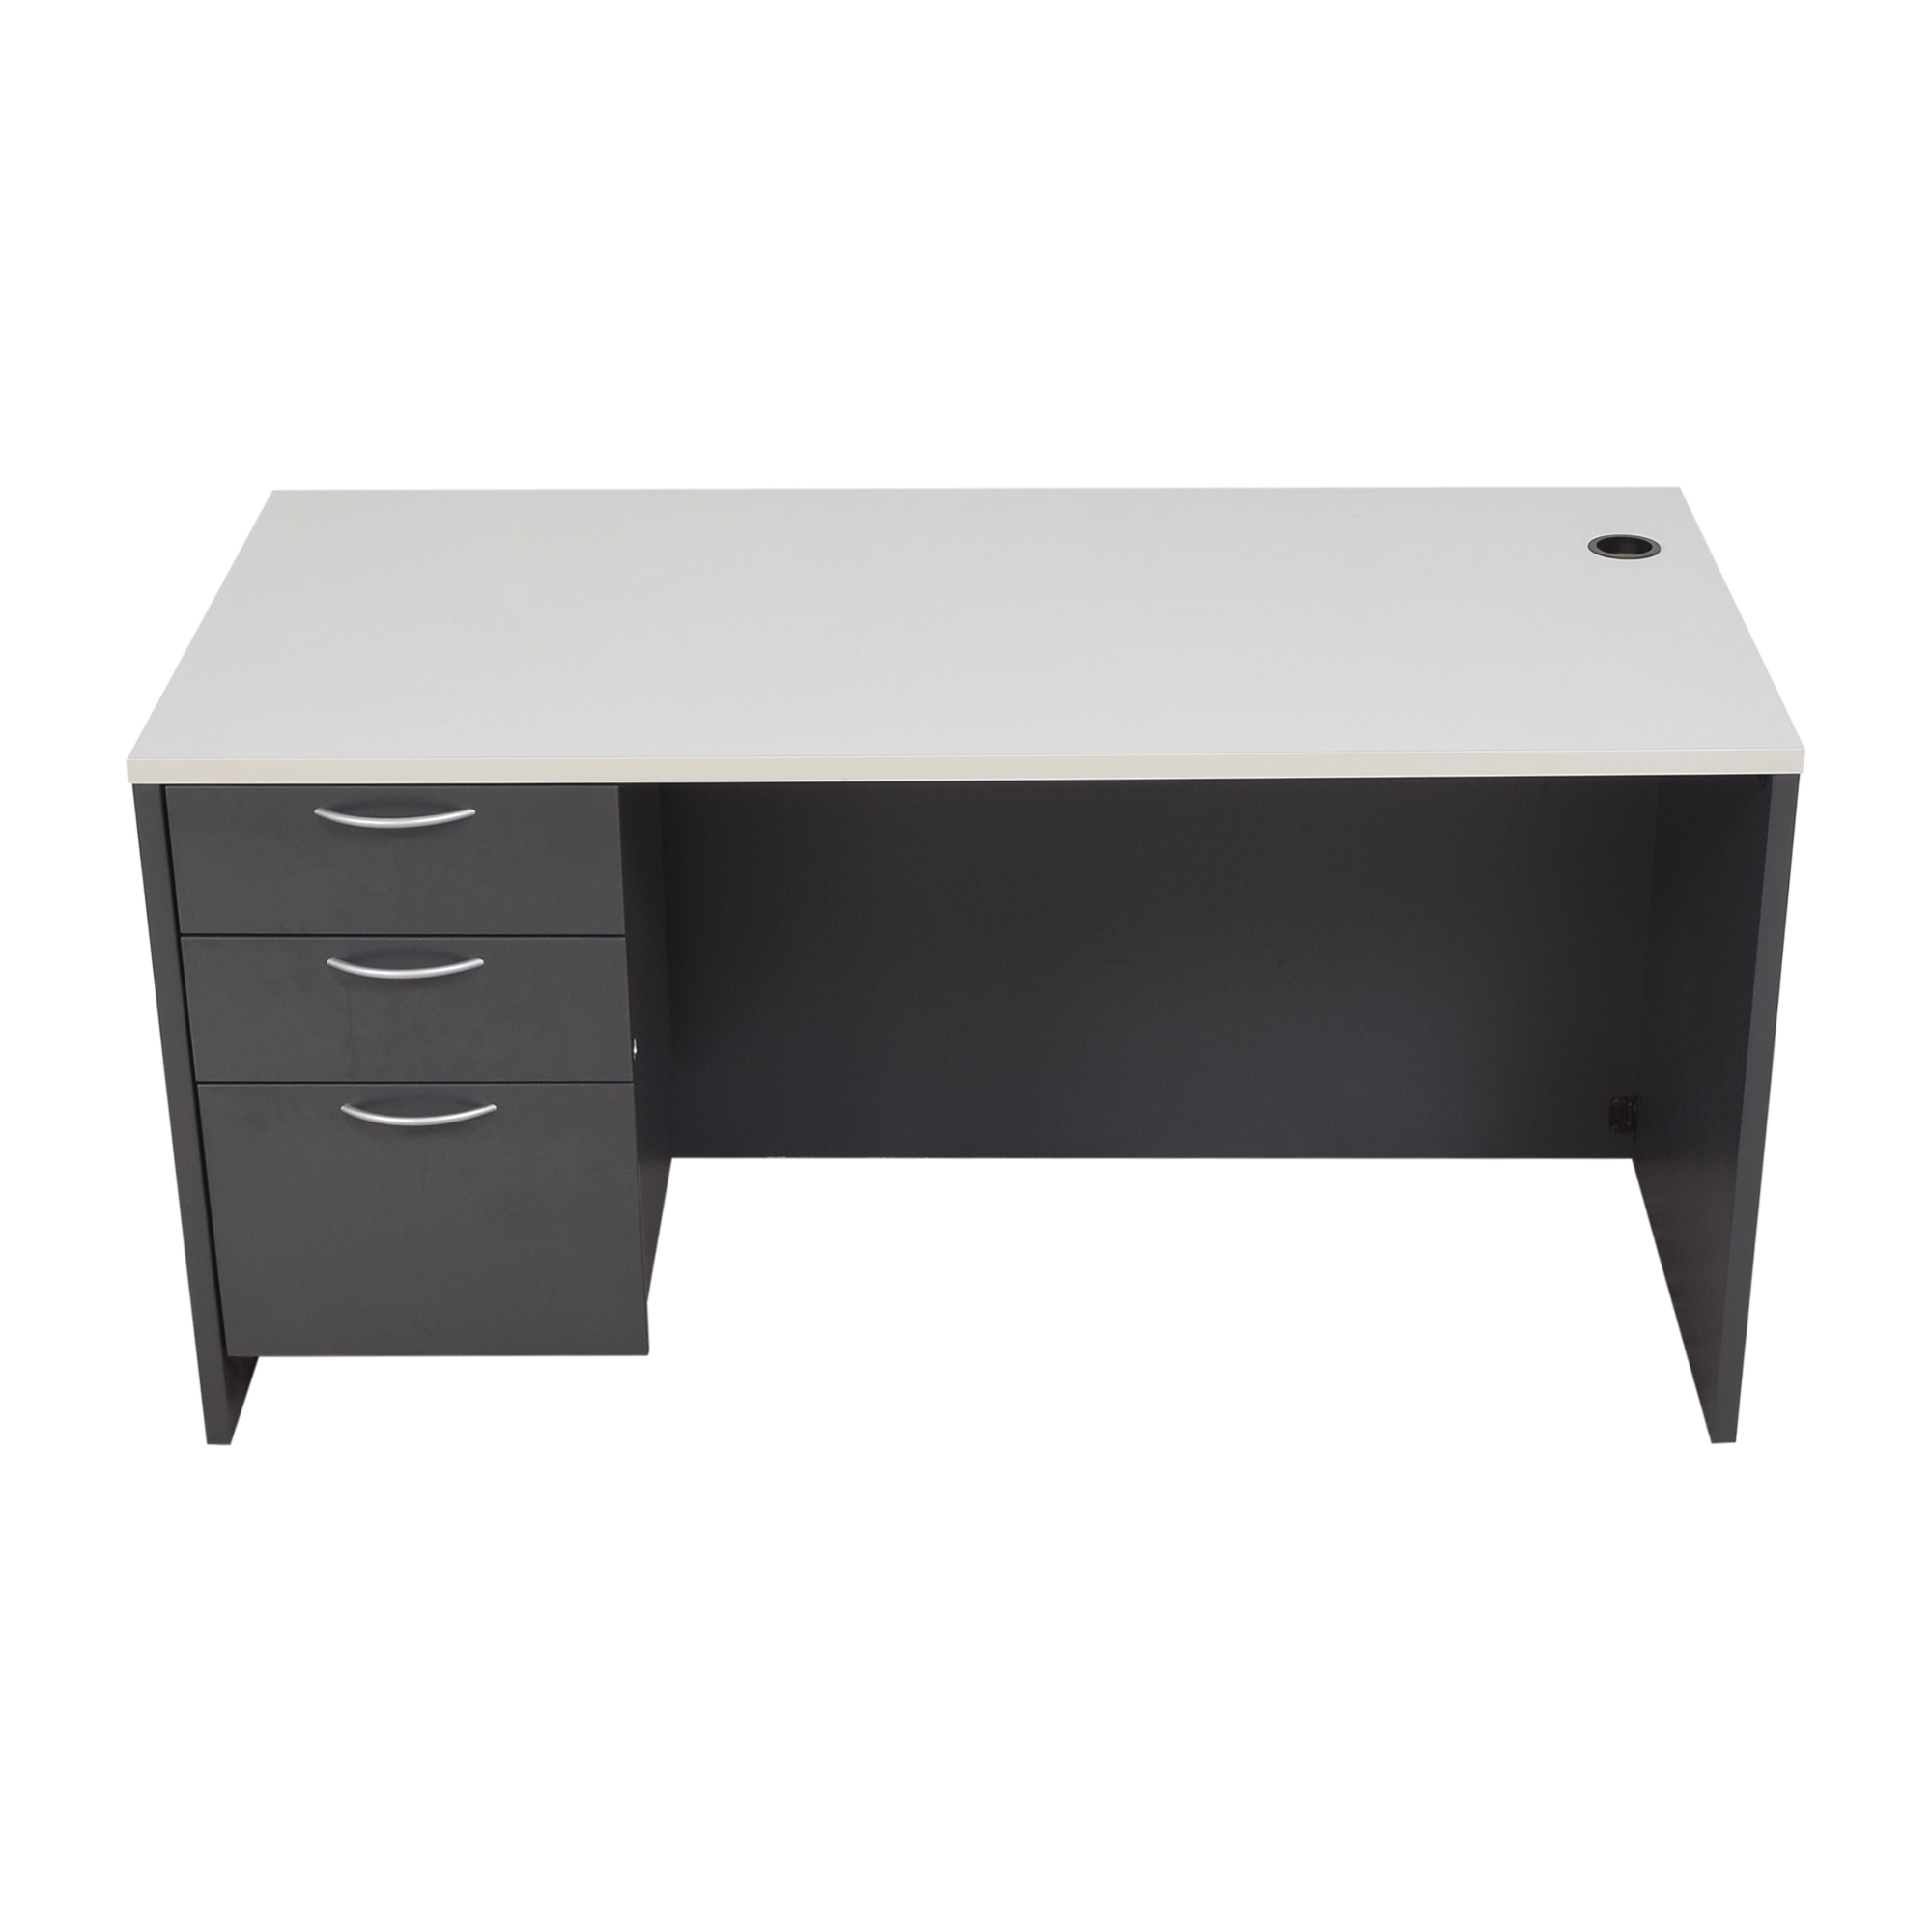 Office Furniture Heaven Office Furniture Heaven Three Drawer Desk for sale